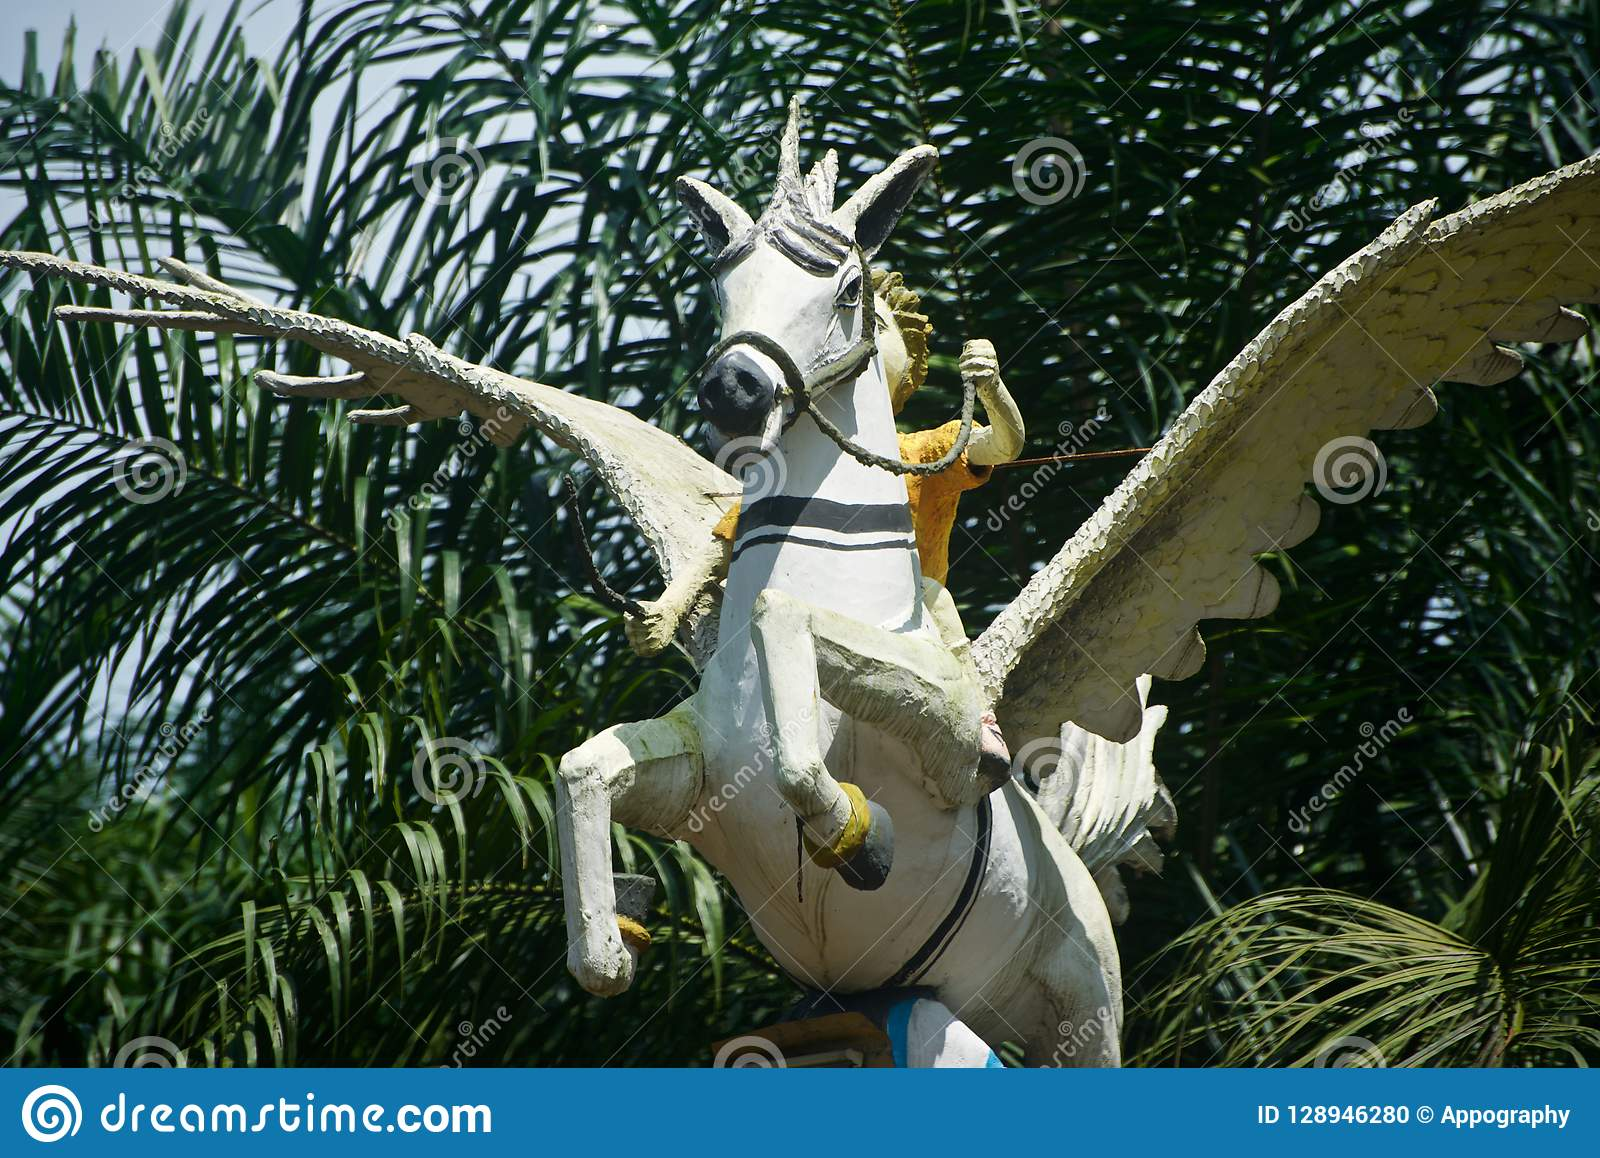 A clay made monuments of flying horse unique photo